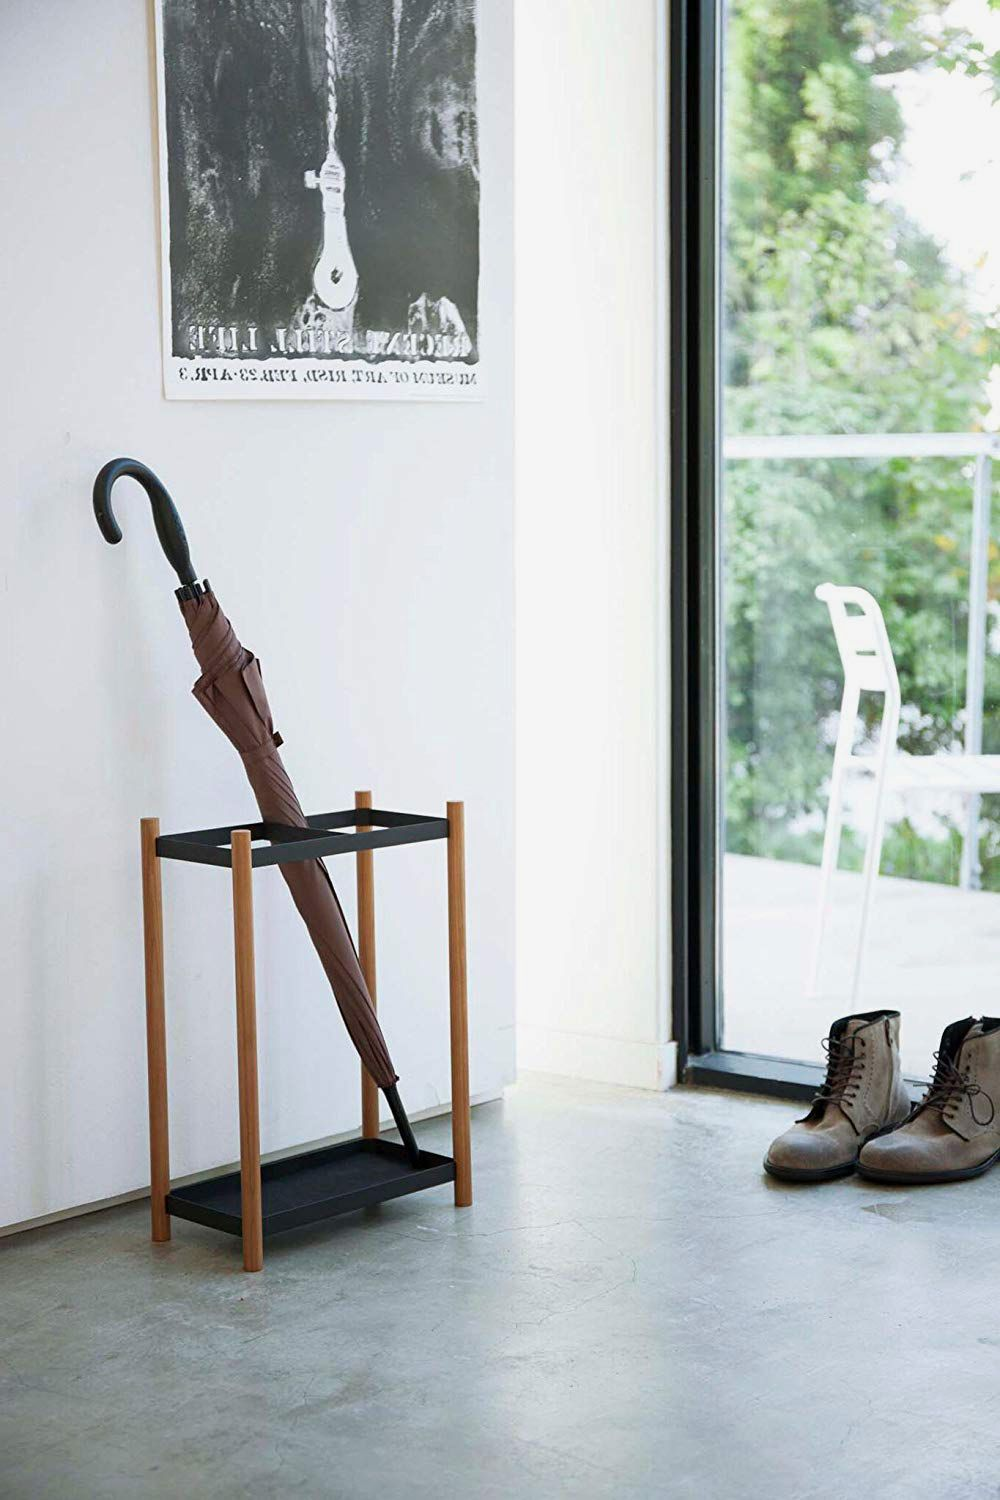 Minimalistic Open Umbrella Stand